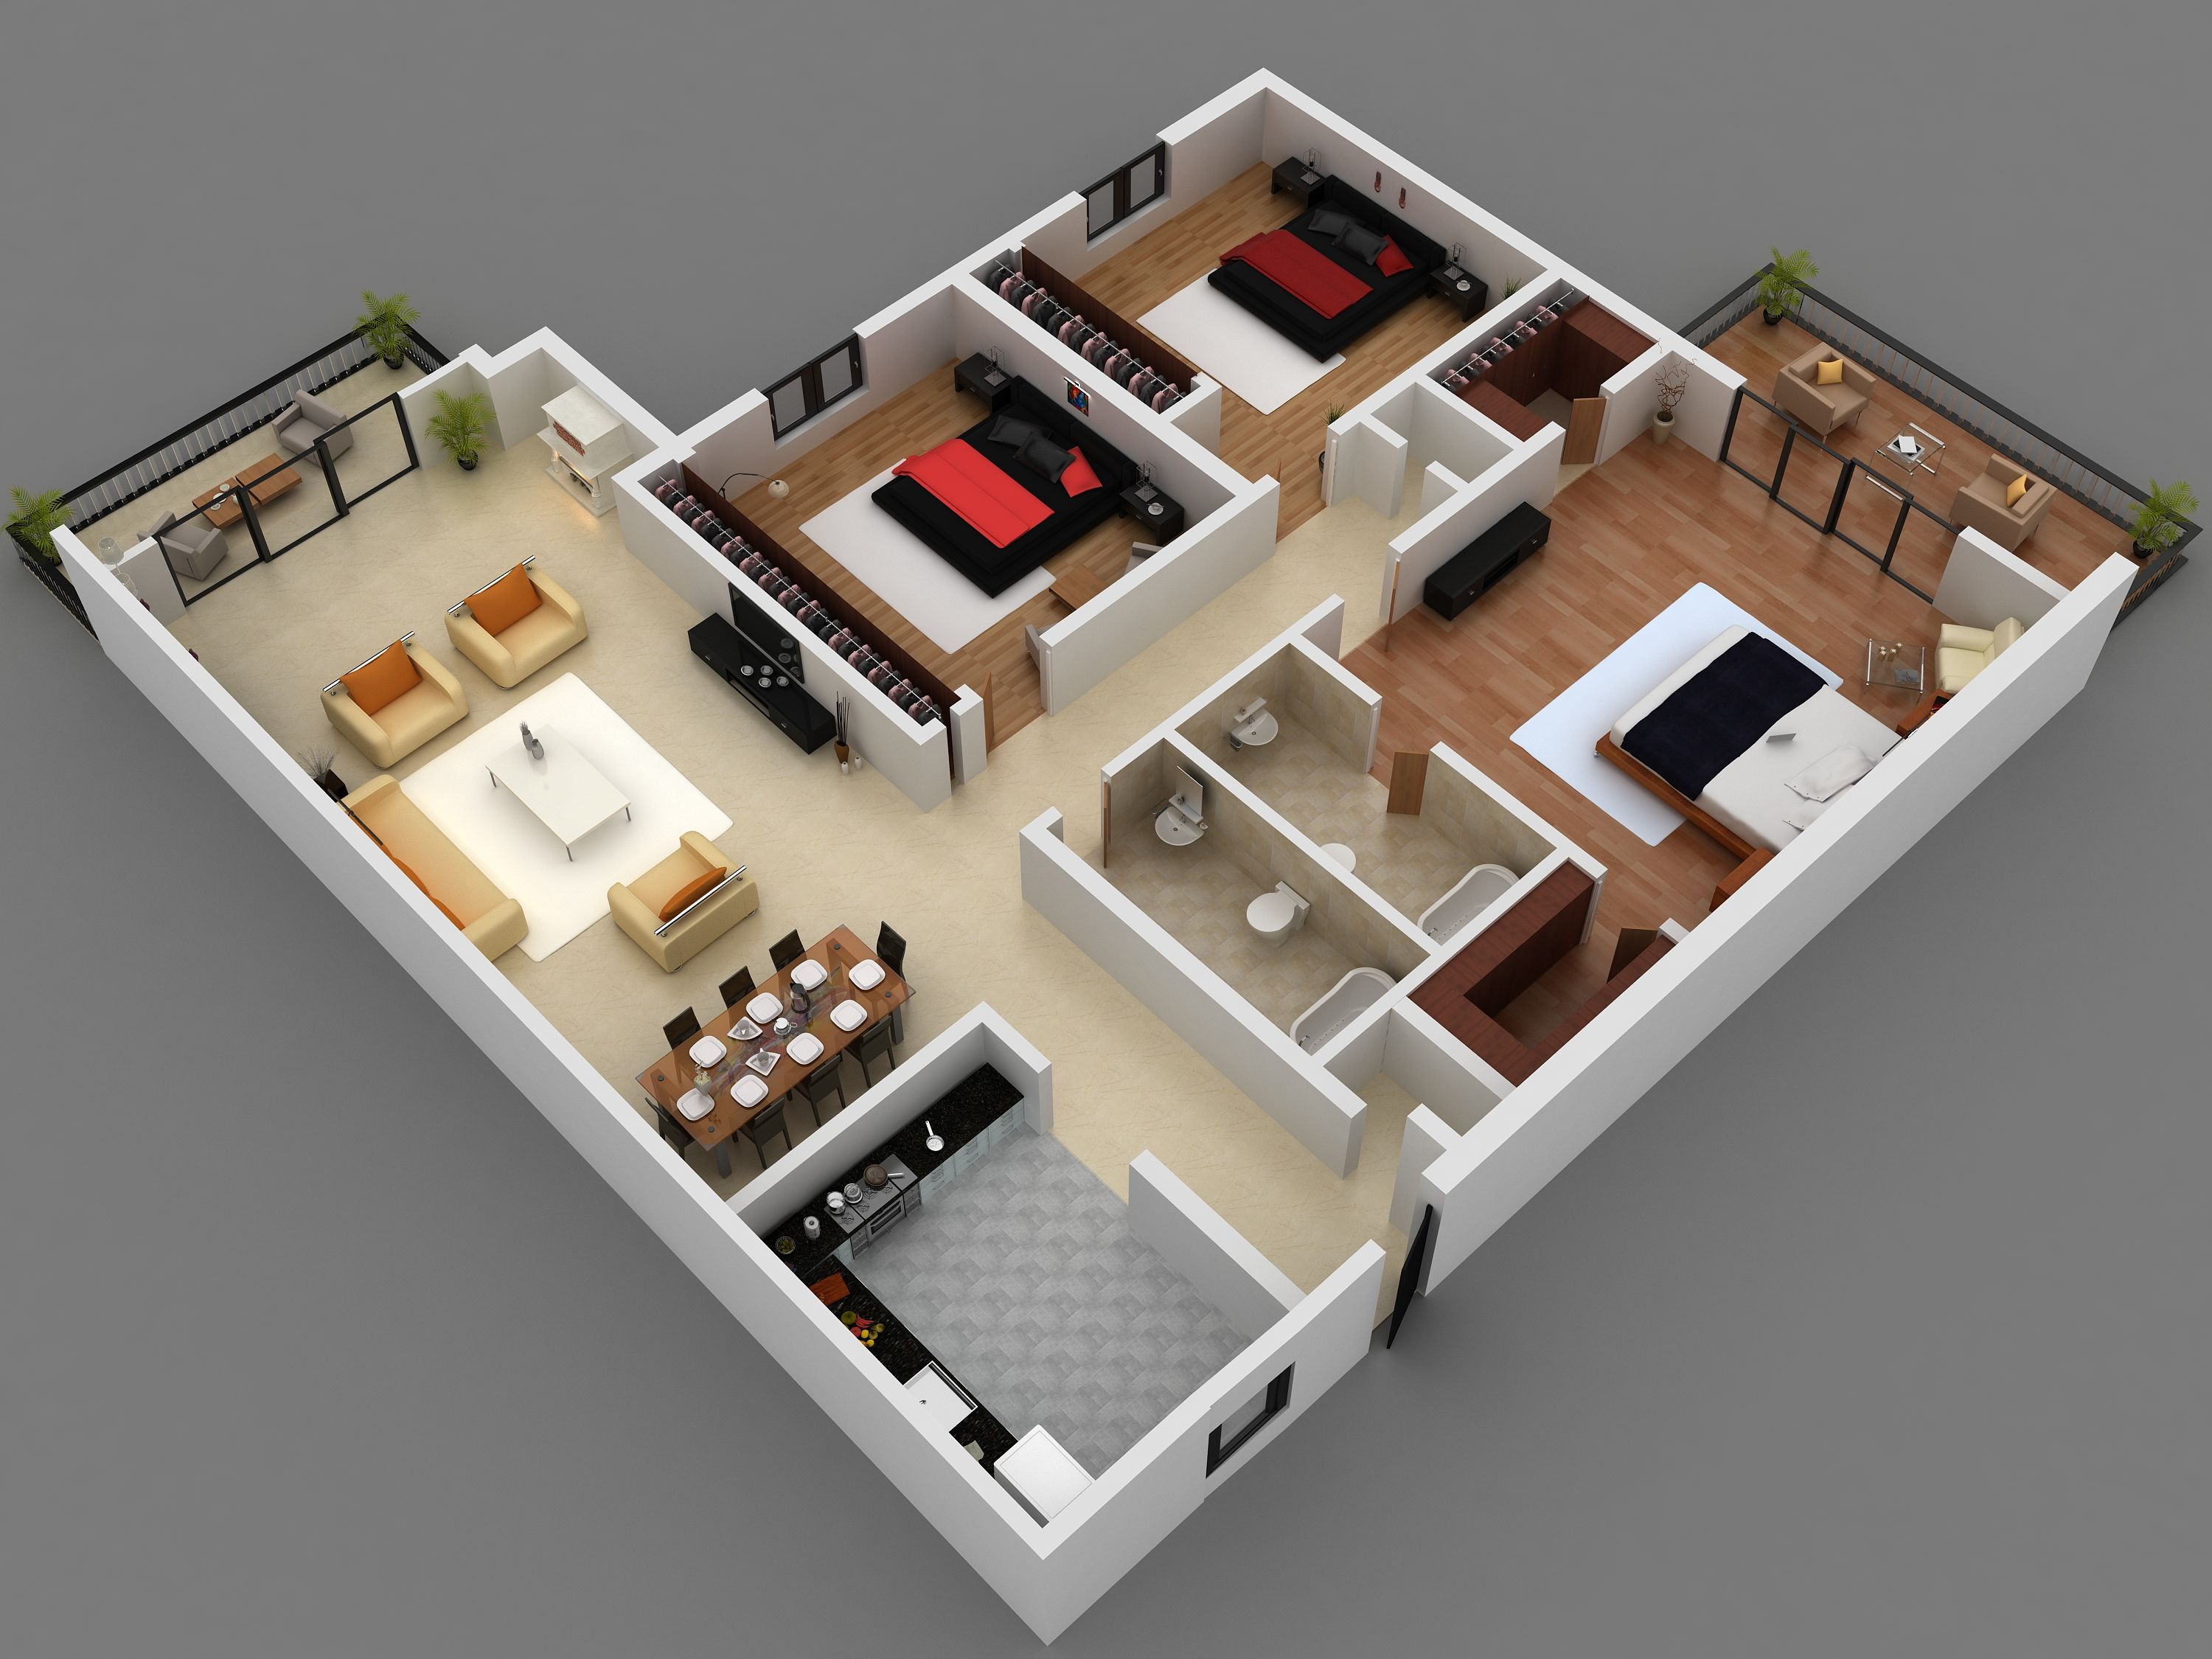 3 Bedroom Flat Floor Plan Terrific Remodelling Backyard Or Other 3 Bedroom  Flat Floor Plan